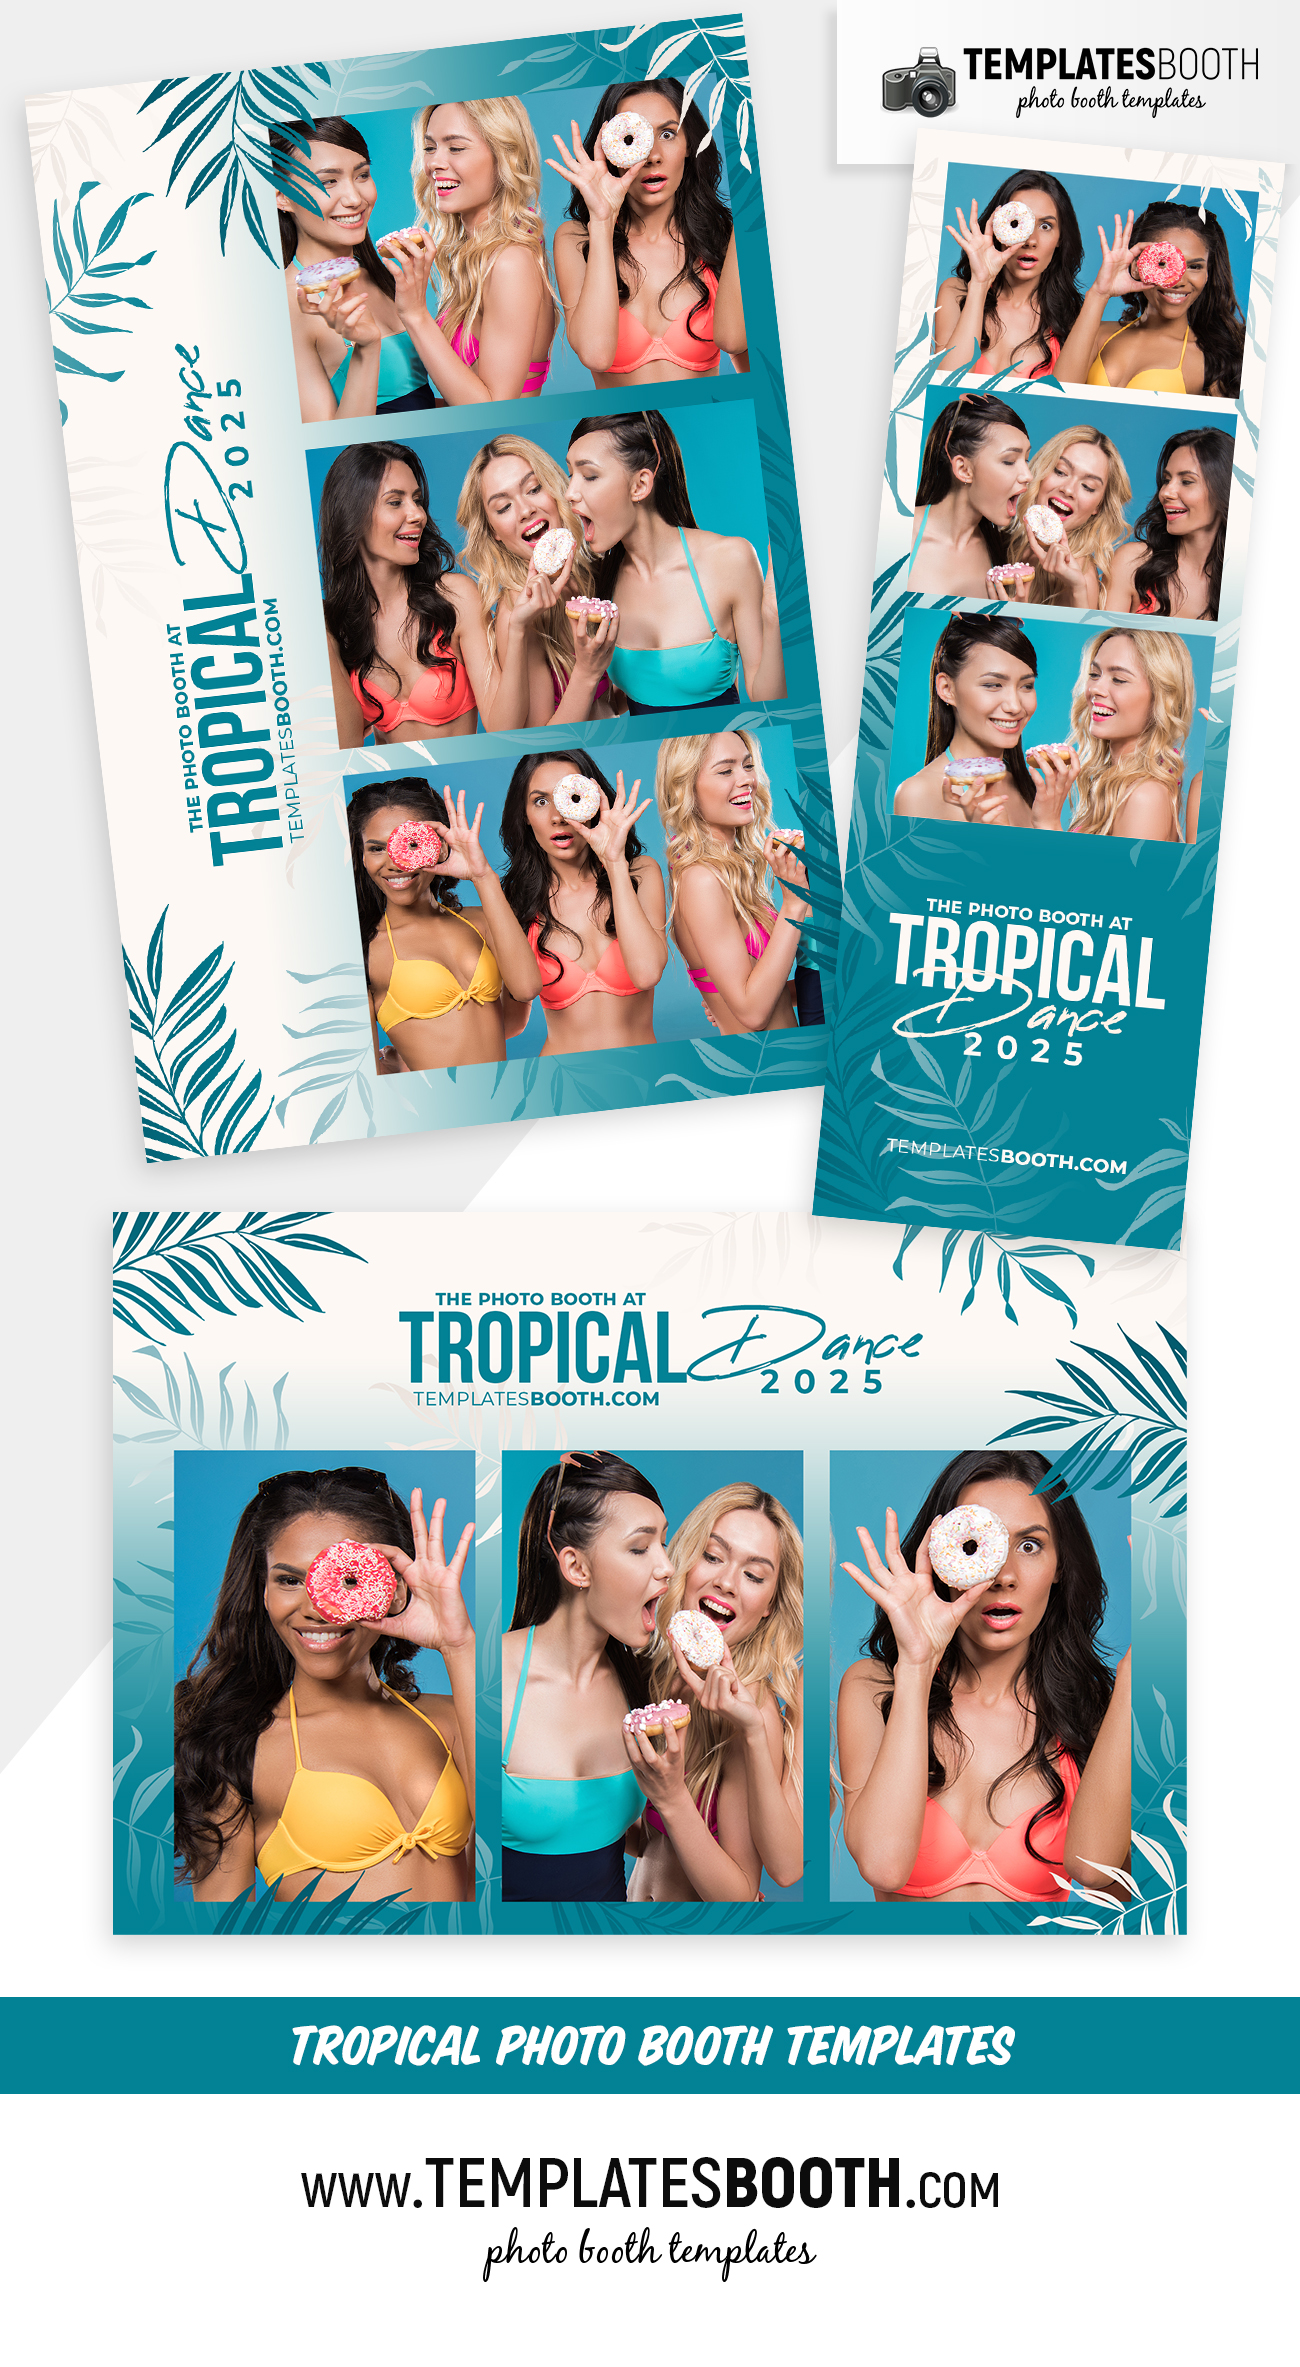 Free Tropical Photo Booth Templates